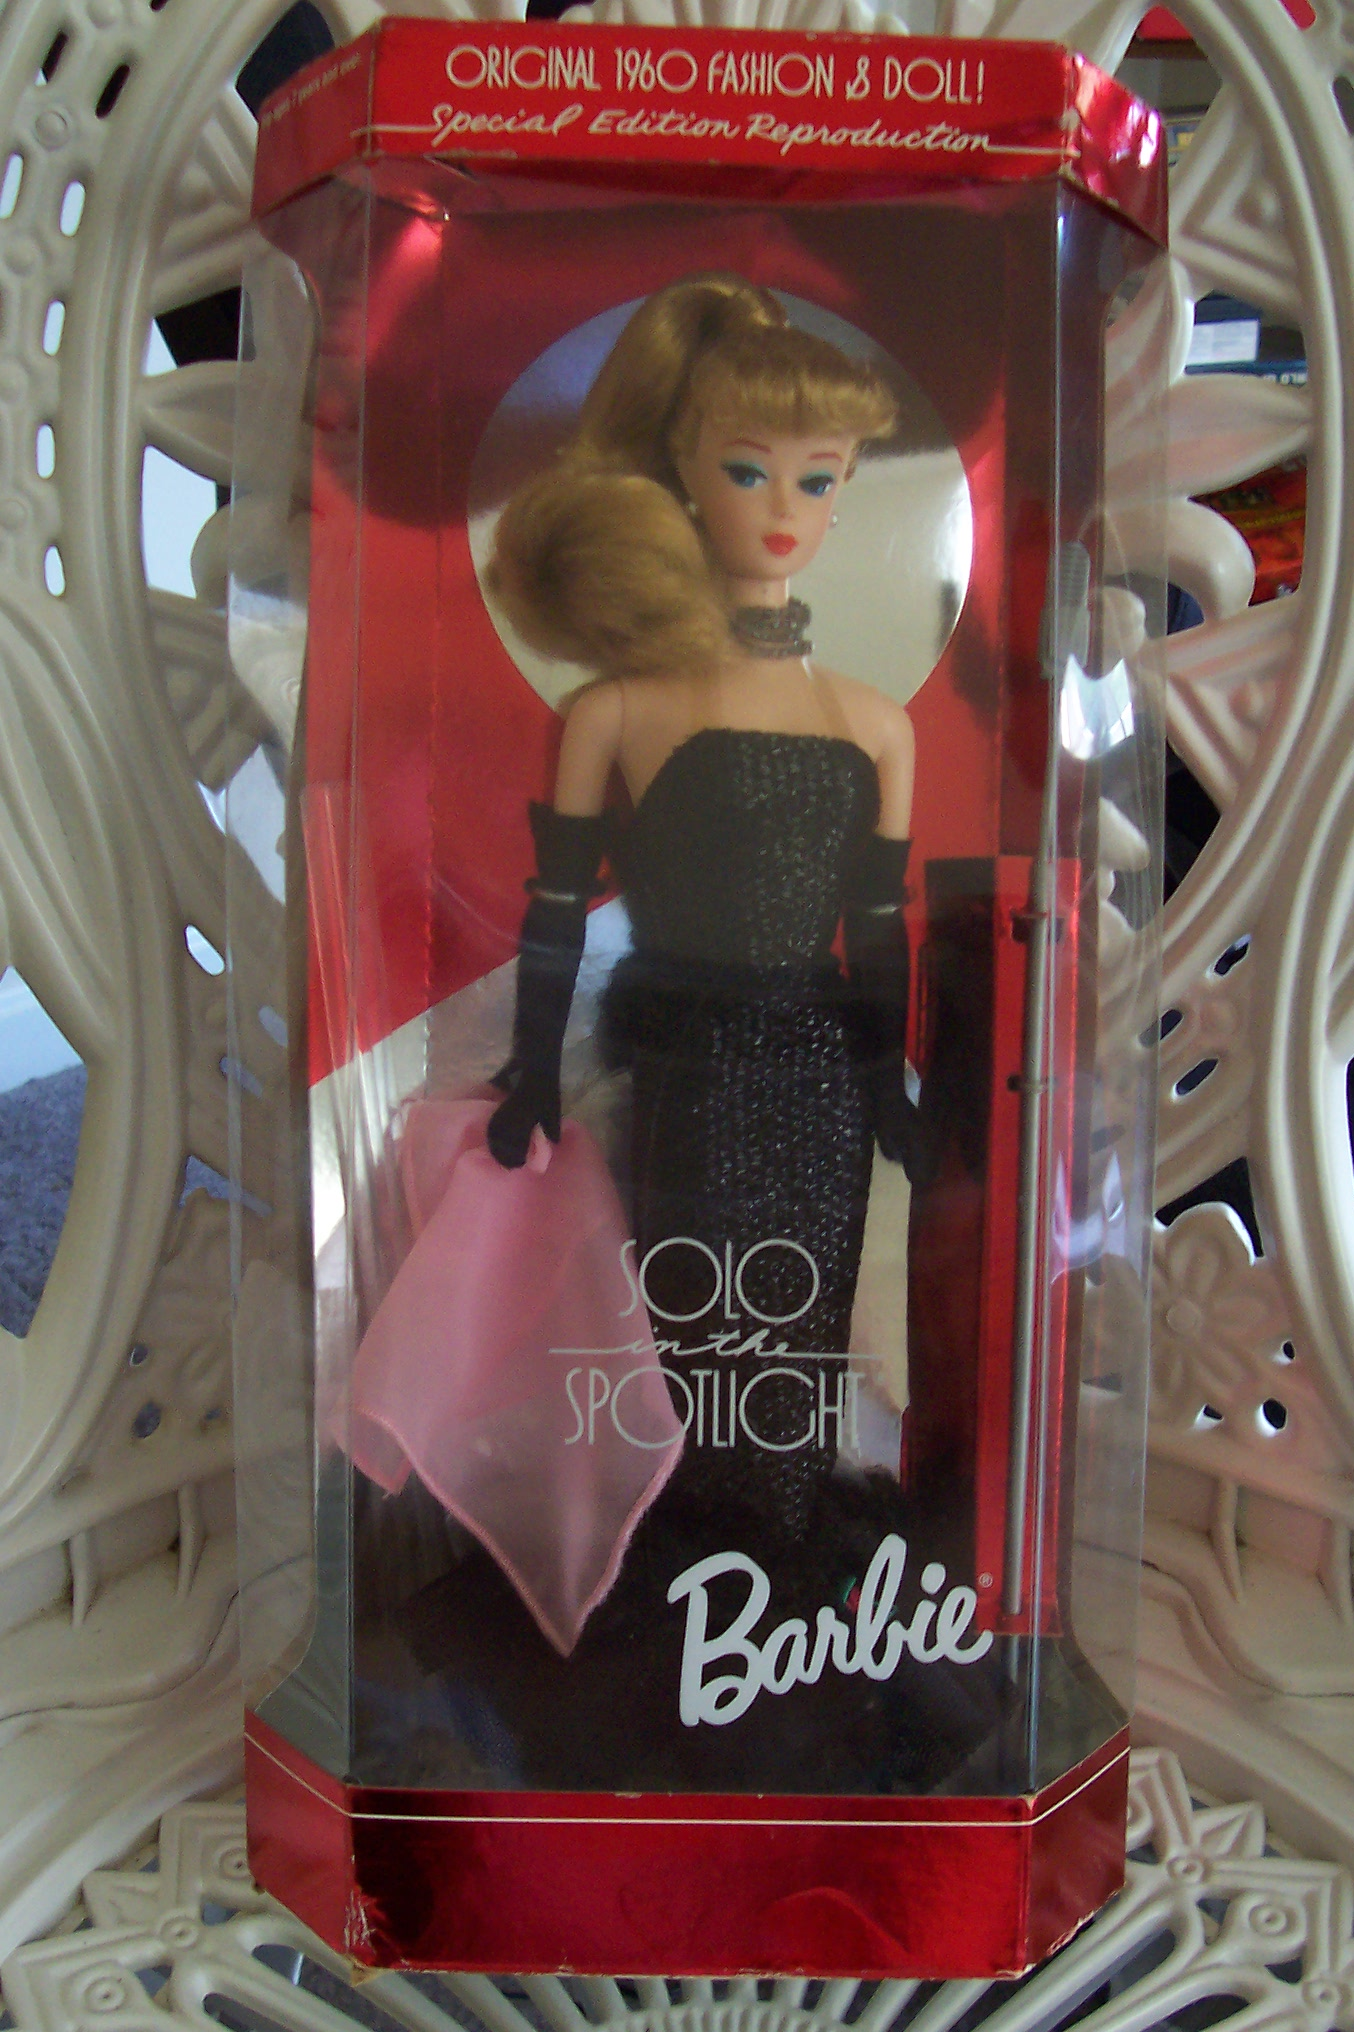 SPECIAL EDITION BARBIES..MANY TO CHOOSE FROM.